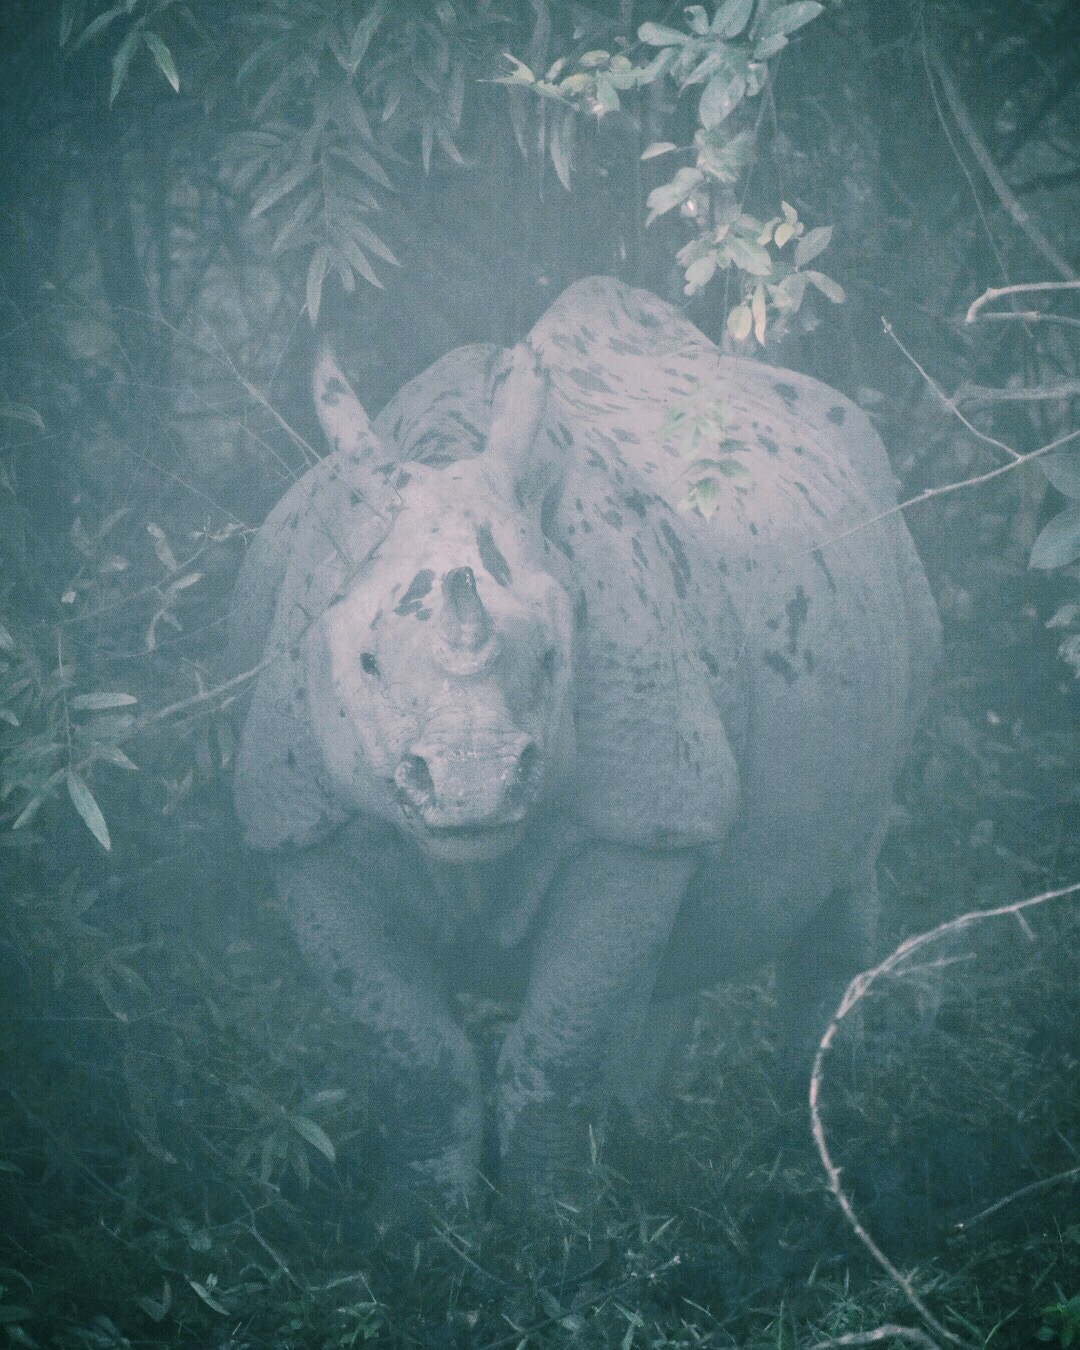 The first rhino of the morning